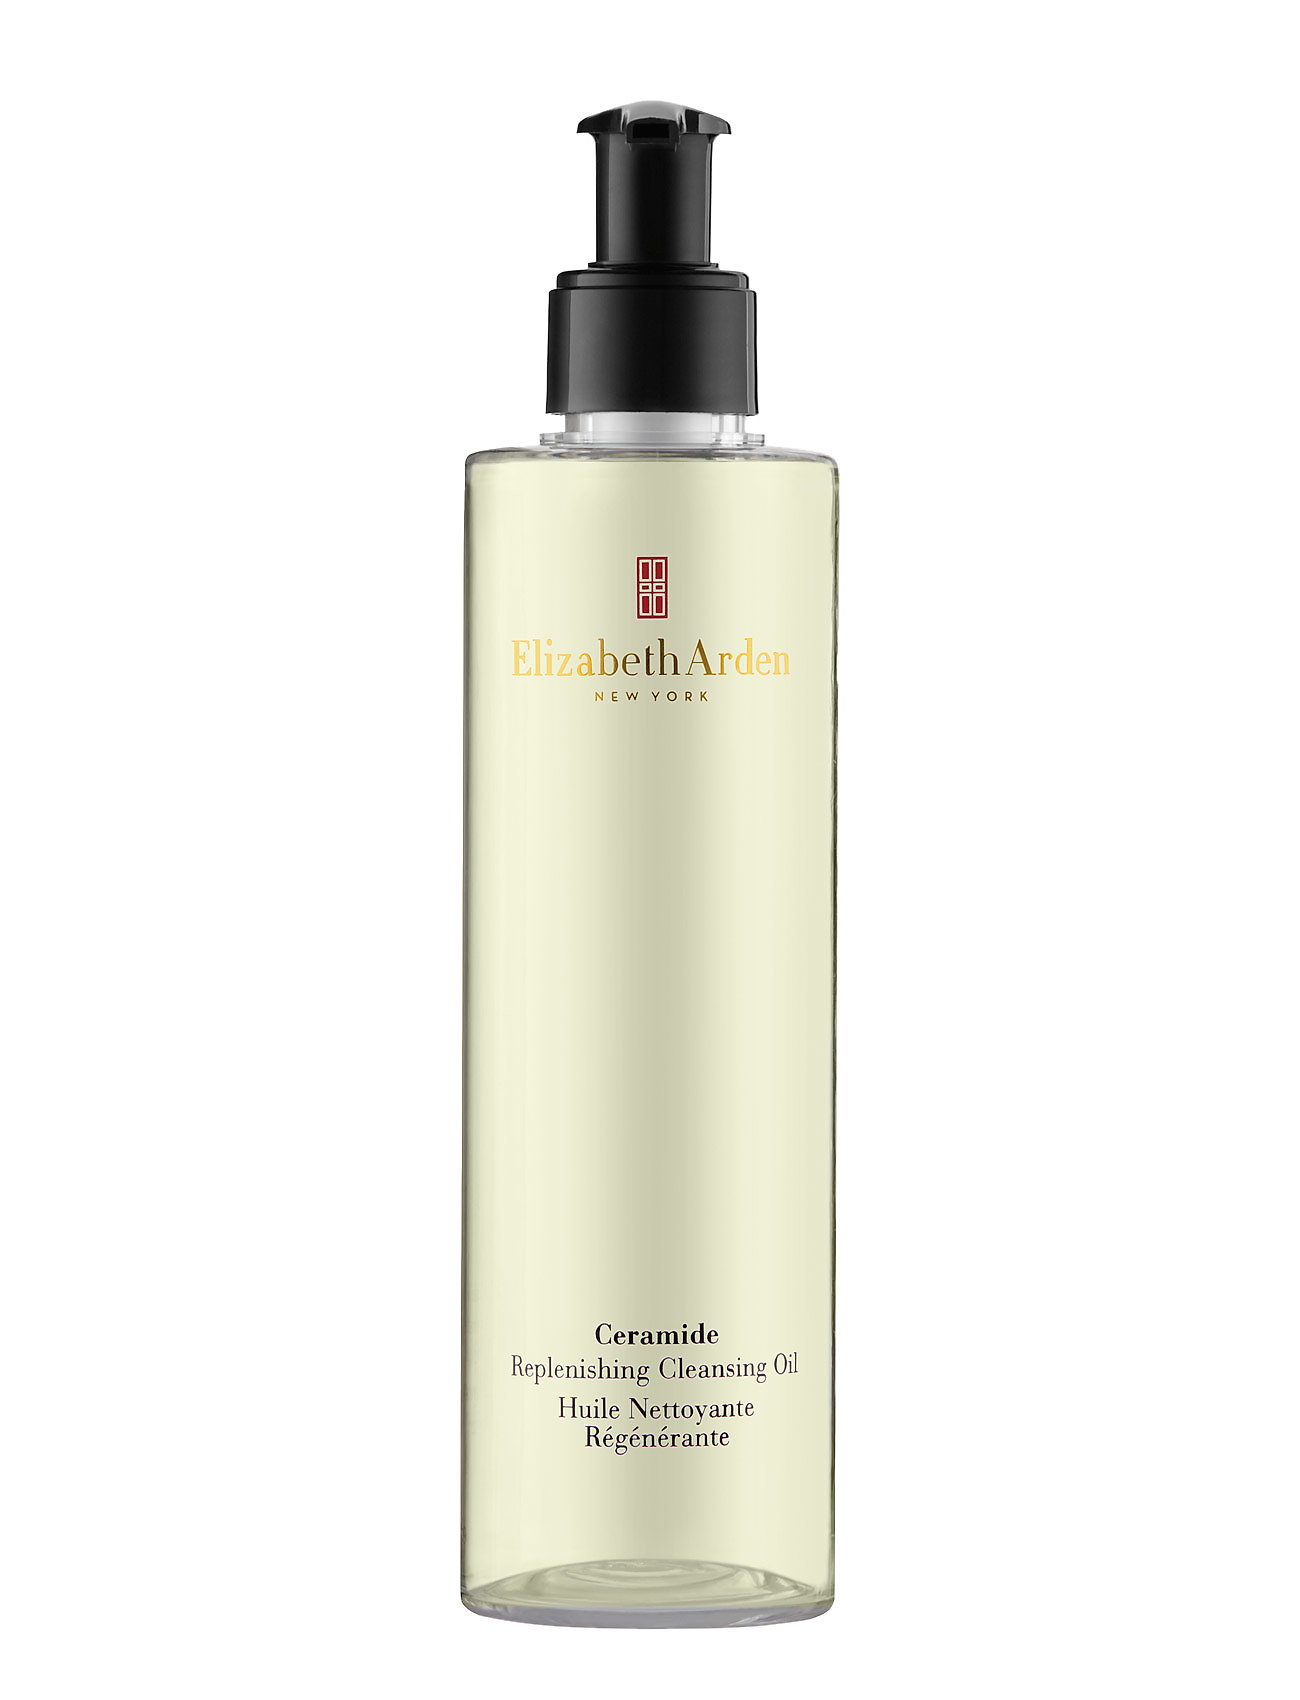 Image of Ceramide Replenishing Cleansing Oil Beauty WOMEN Skin Care Face Cleansers Cleansing Gel Nude Elizabeth Arden (3356792909)